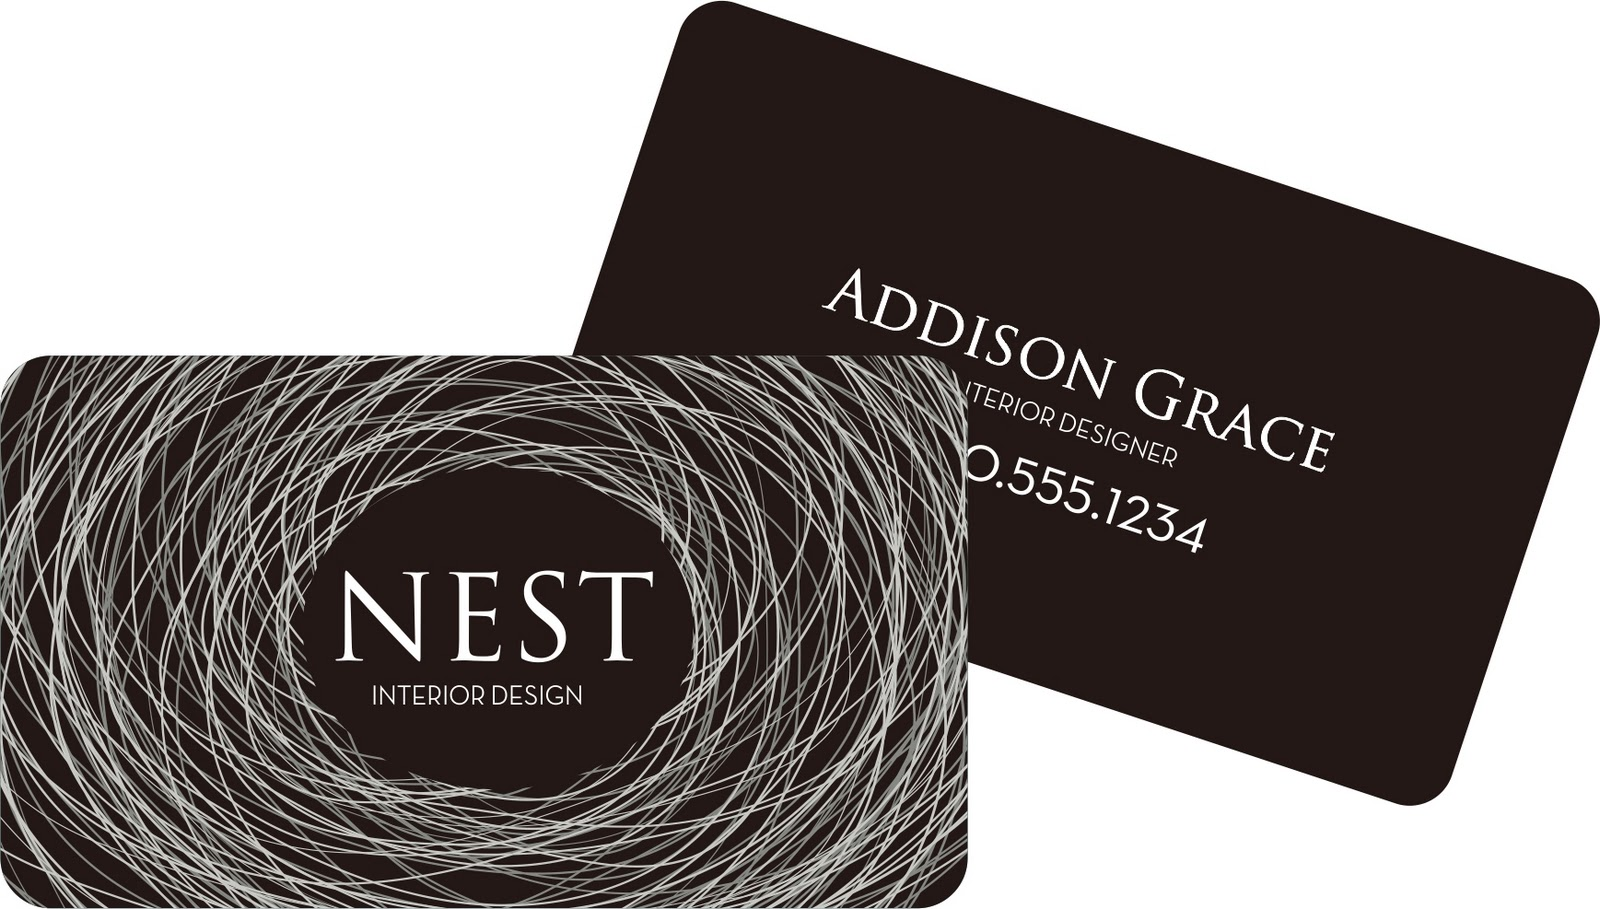 New Business Cards in the New Year! - Get Creative Blog - Creative ...